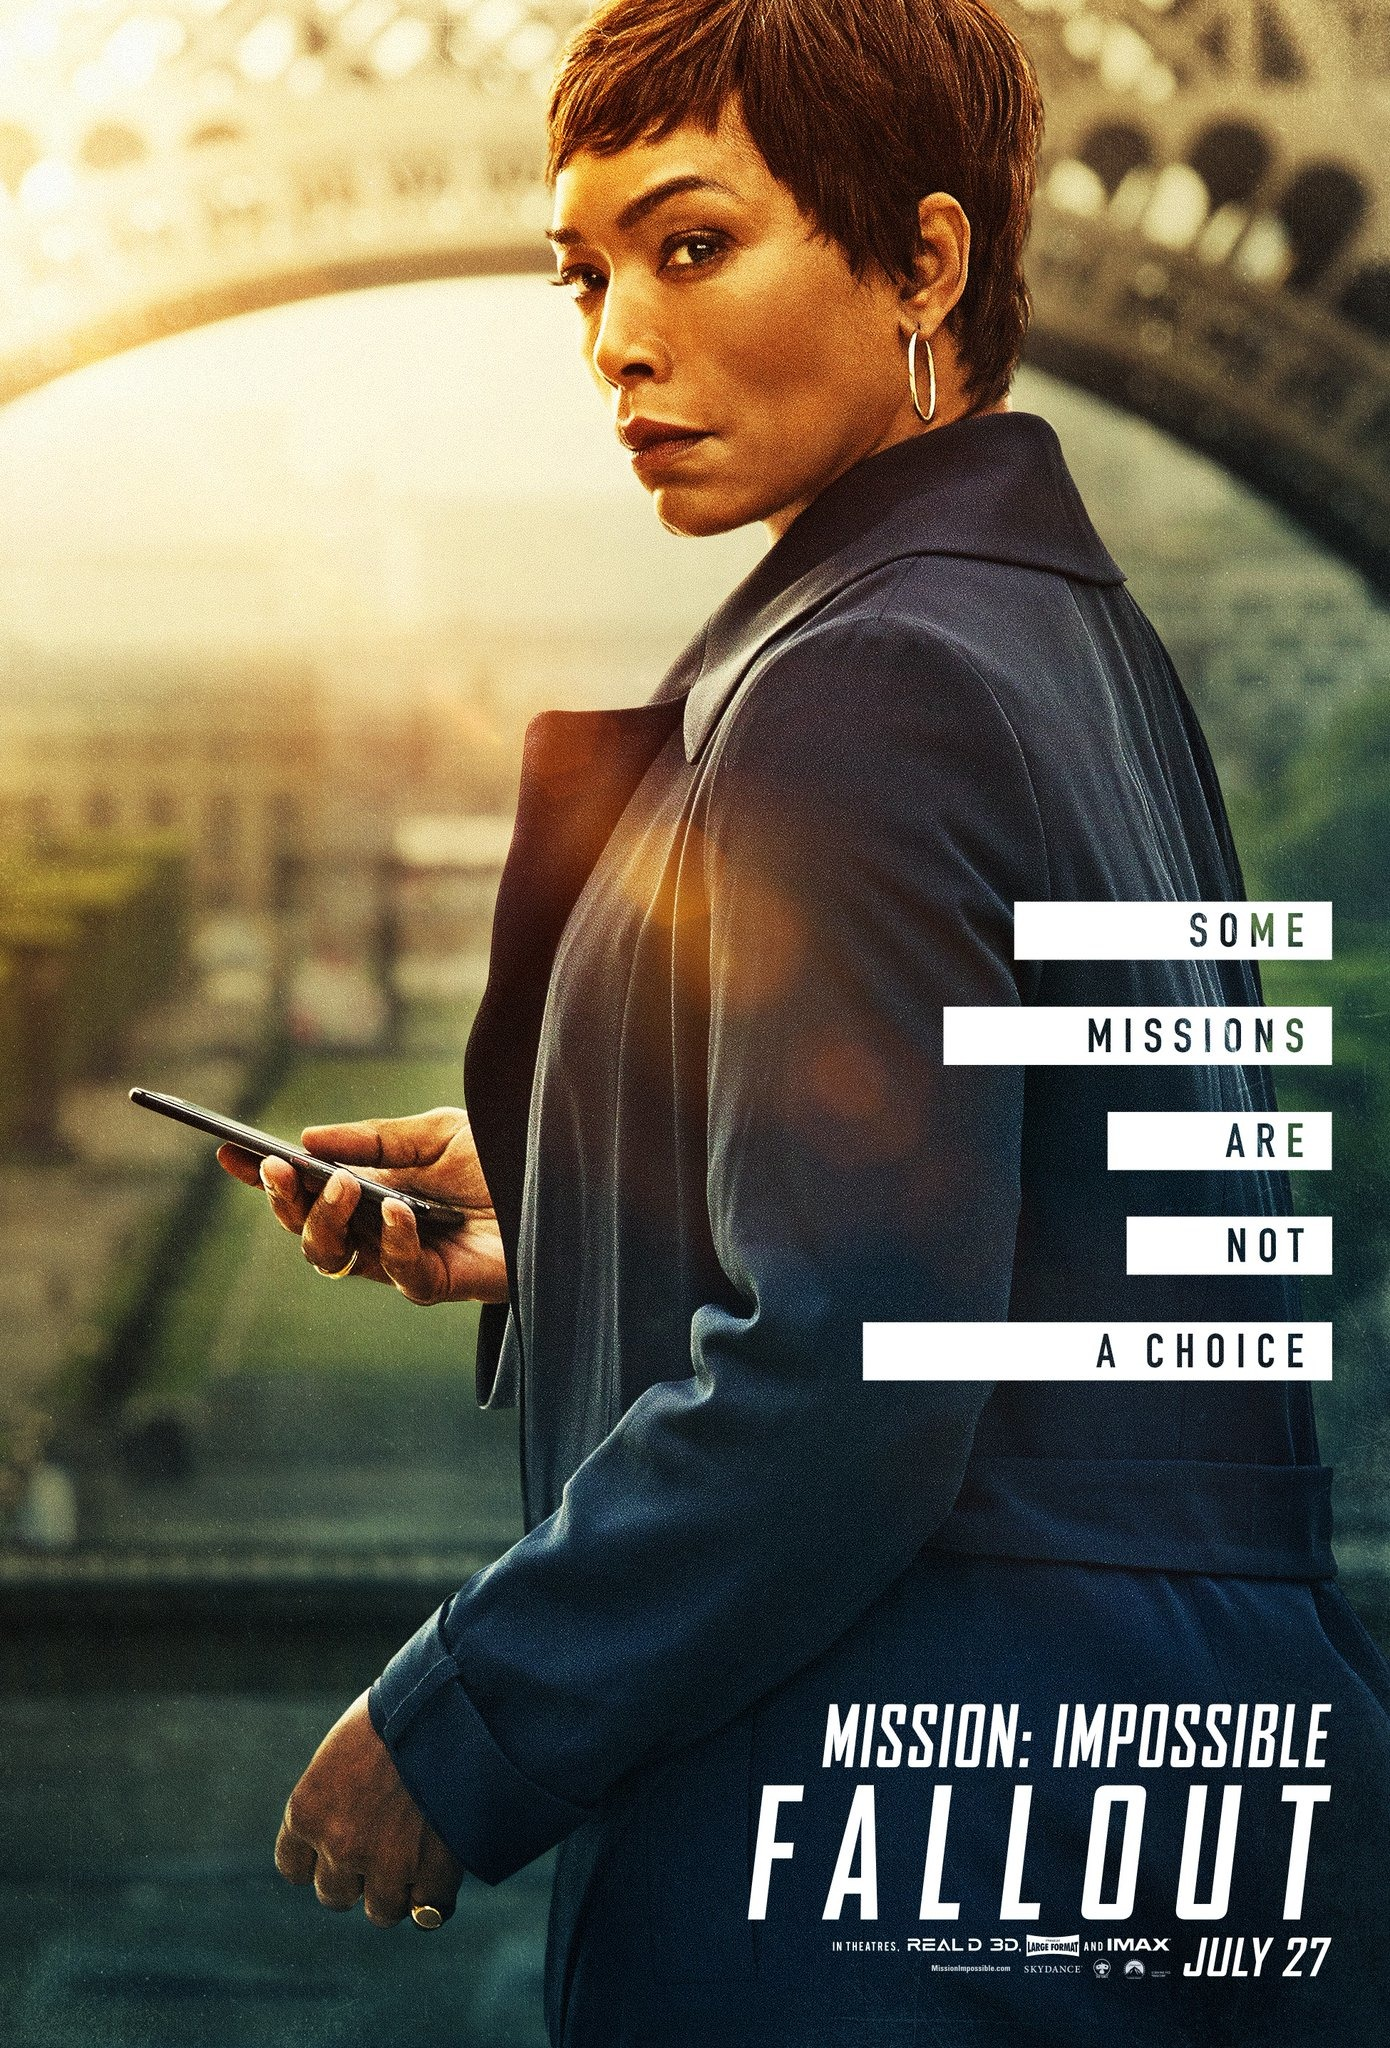 Mission Impossible Fallout poster 9.jpg